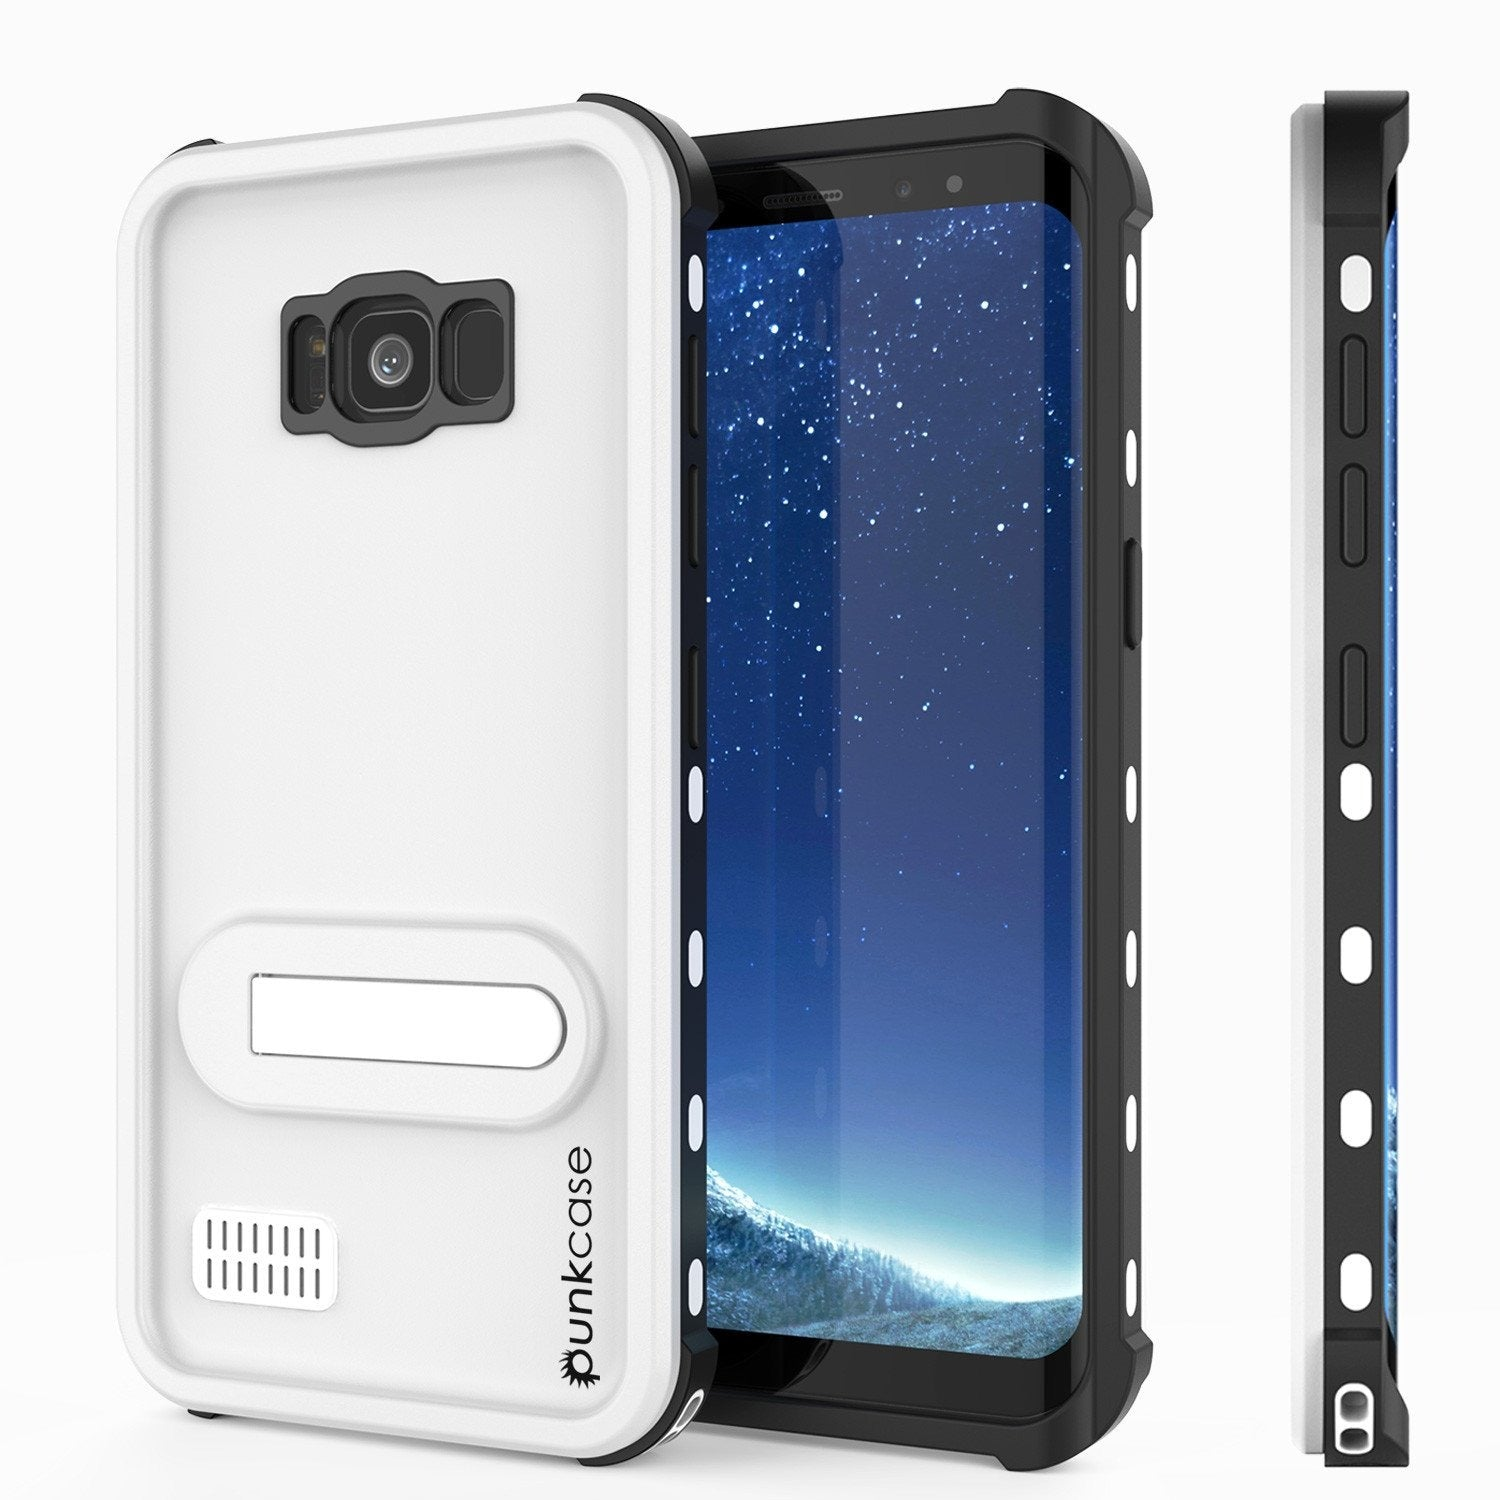 Galaxy S8 Waterproof Case, Punkcase [KickStud Series] [Slim Fit] [IP68 Certified] [Shockproof] [Snowproof] Armor Cover W/ Built-In Kickstand [WHITE]